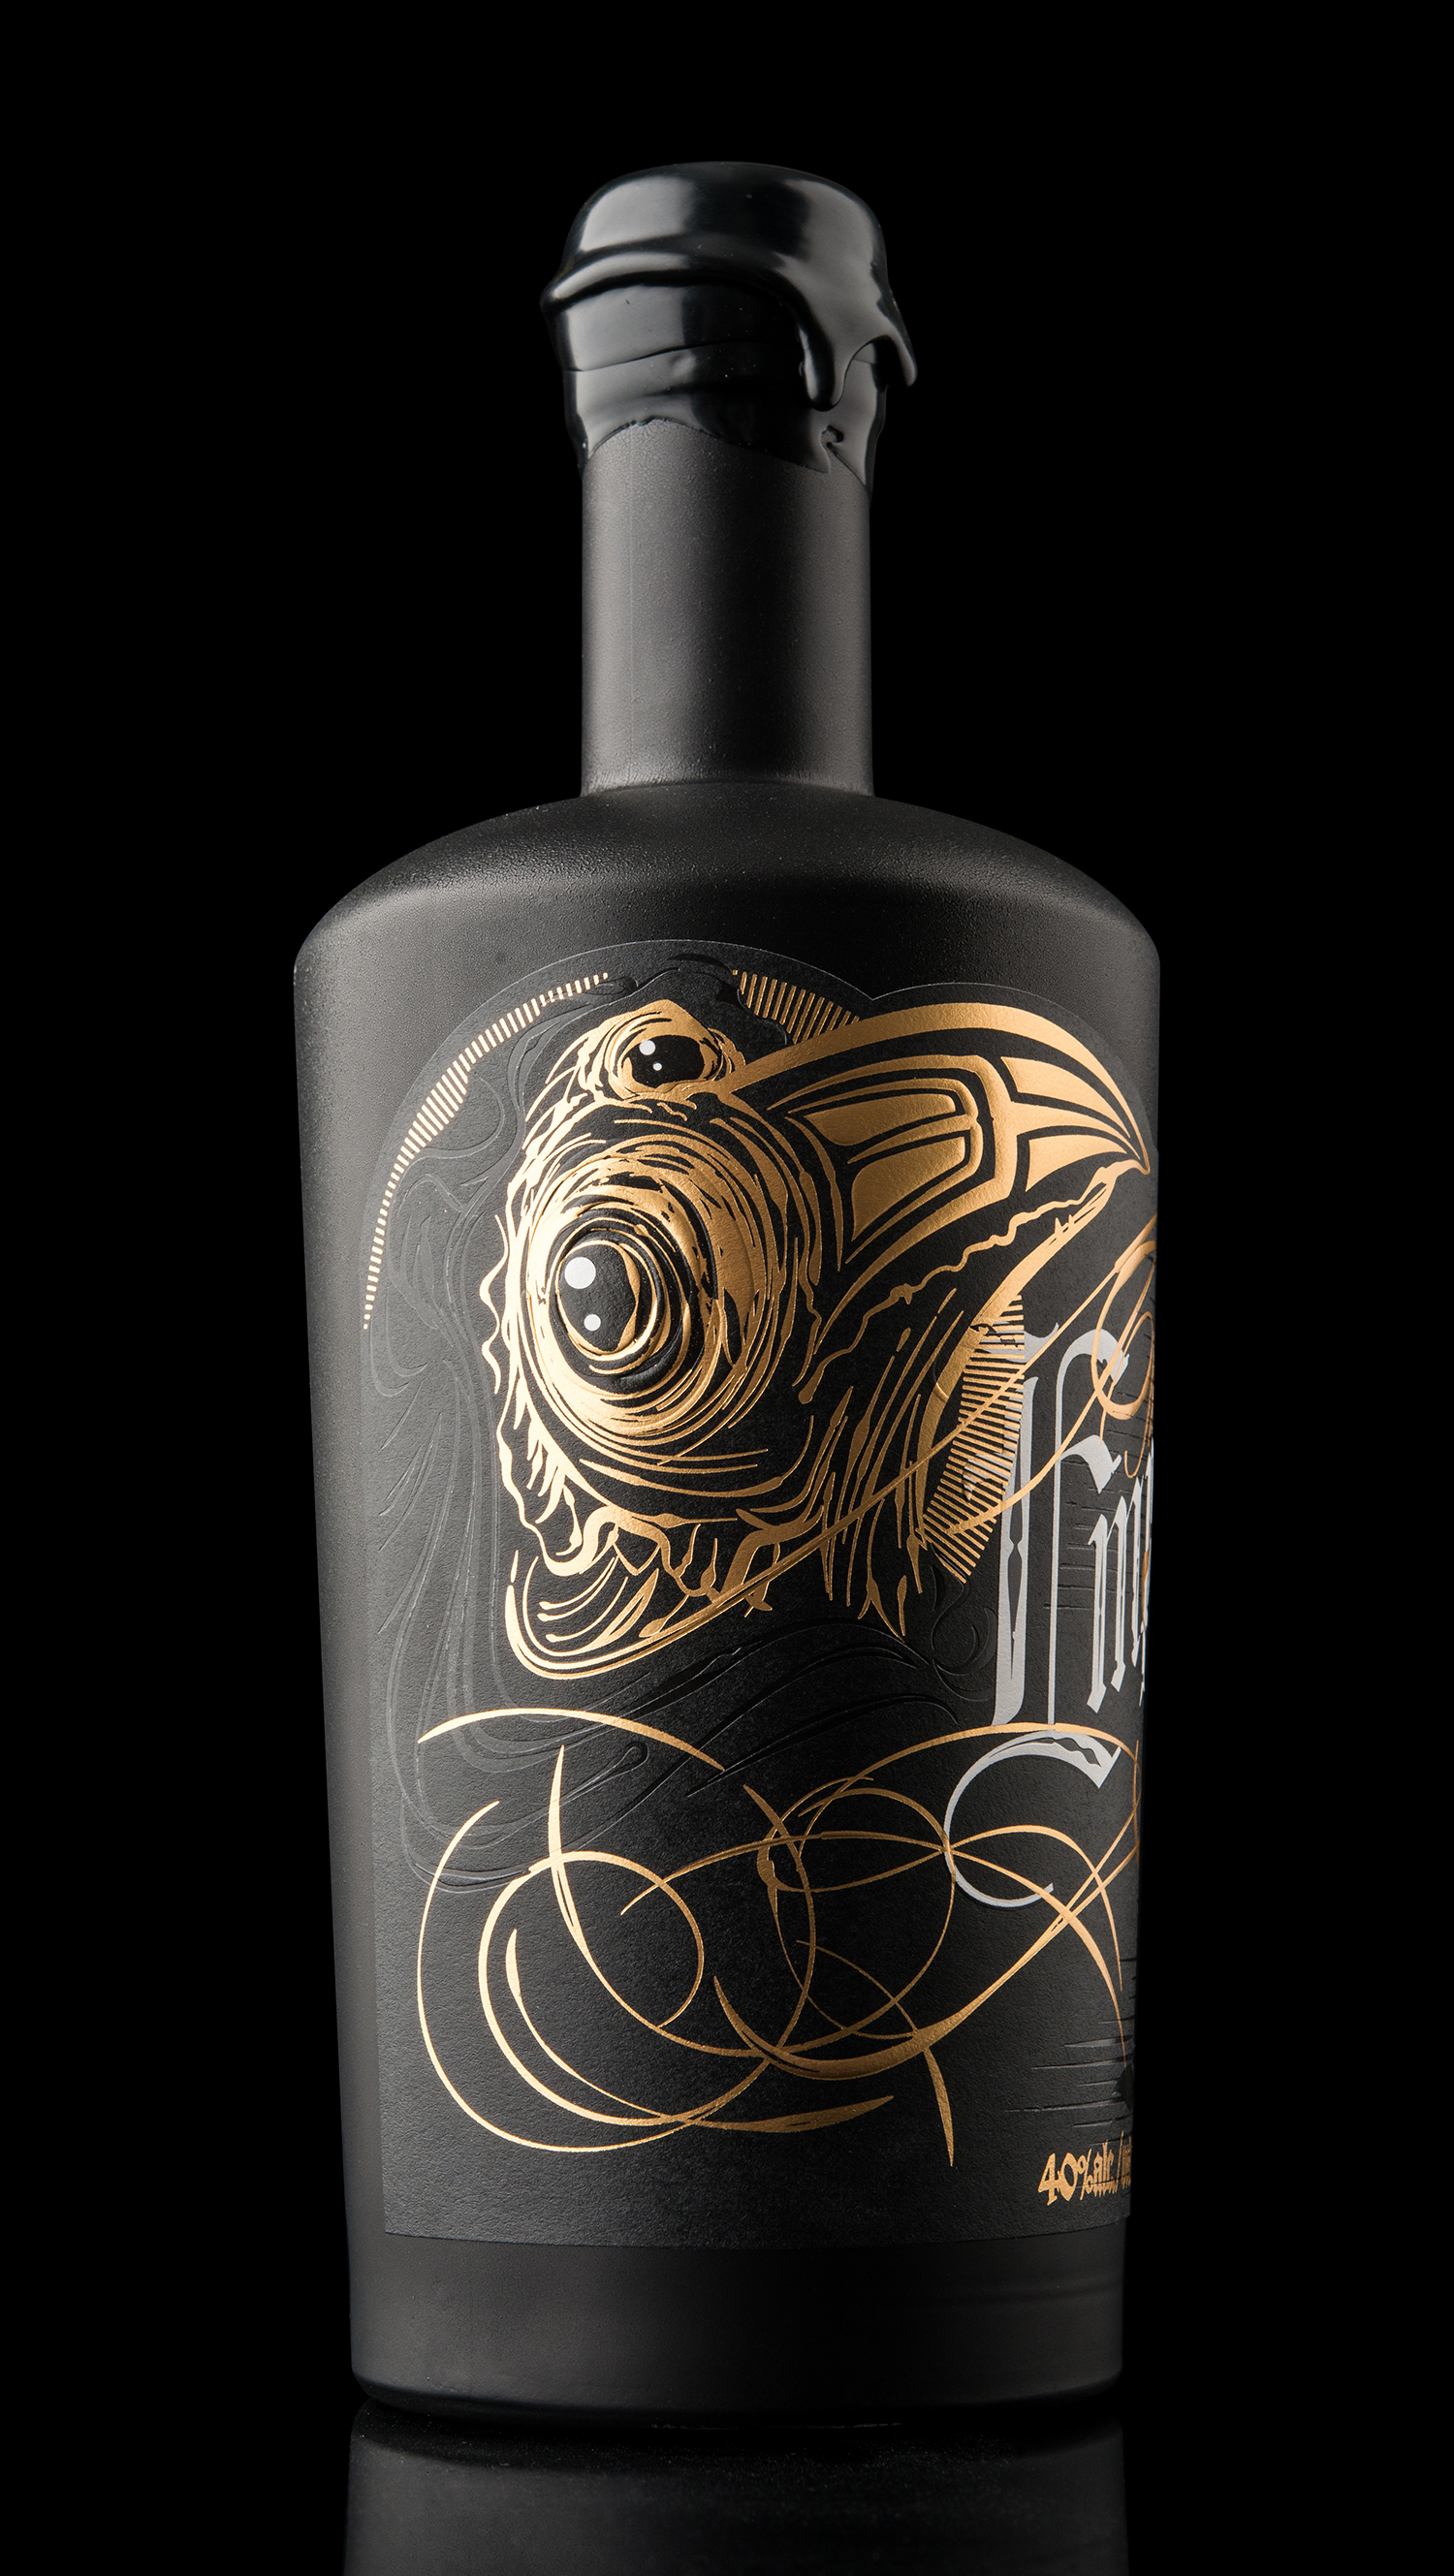 Packaging and Branding Design for Arbutus Distillery's Empiric Gin